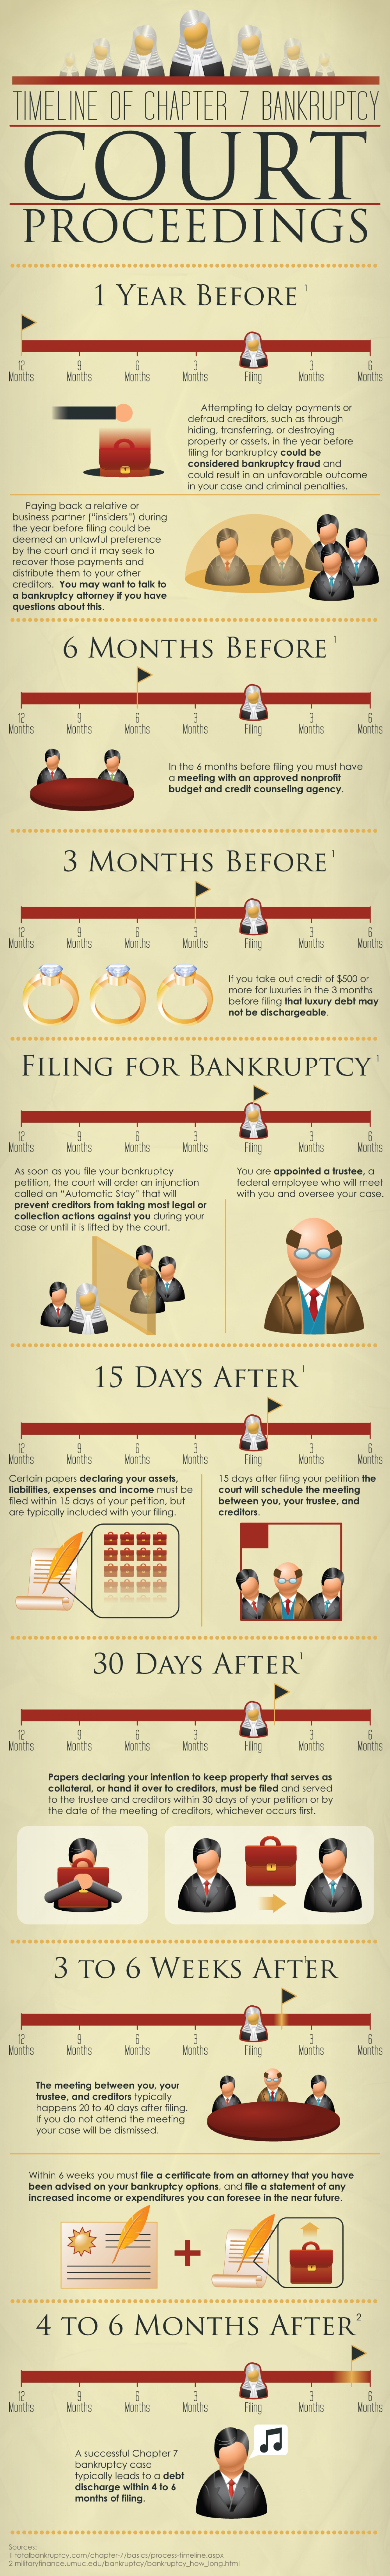 Timeline of Chapter 7 Bankruptcy